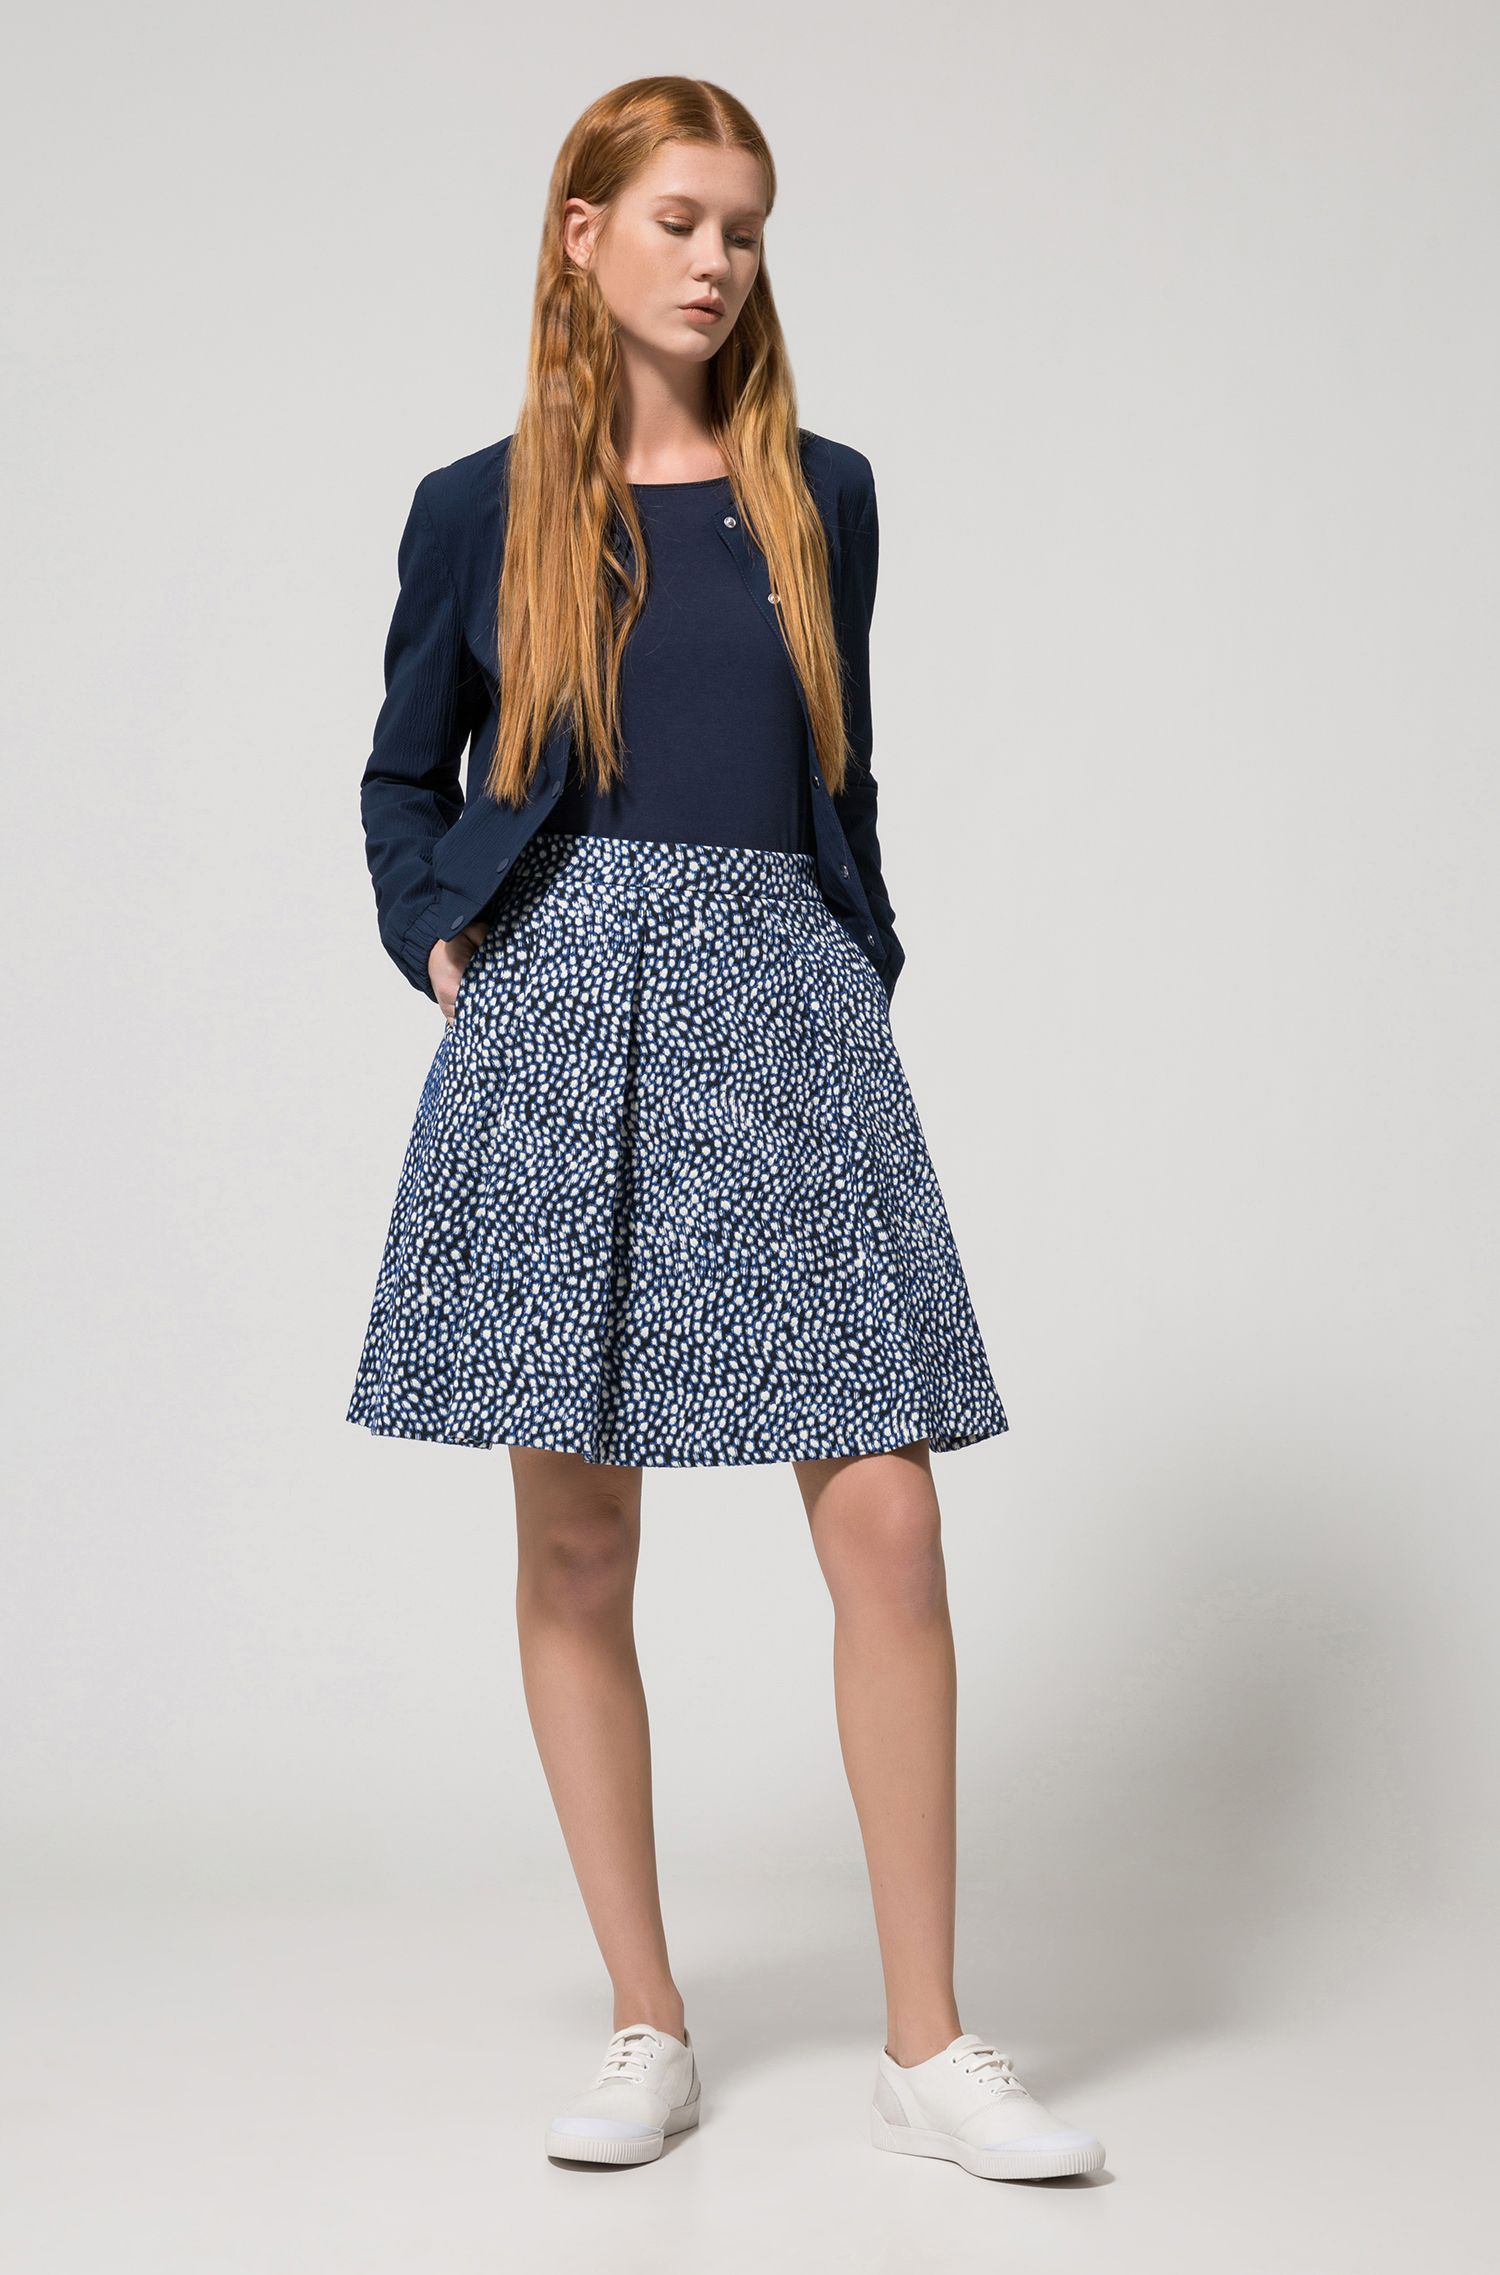 A-line skirt in stretch cotton-blend jacquard